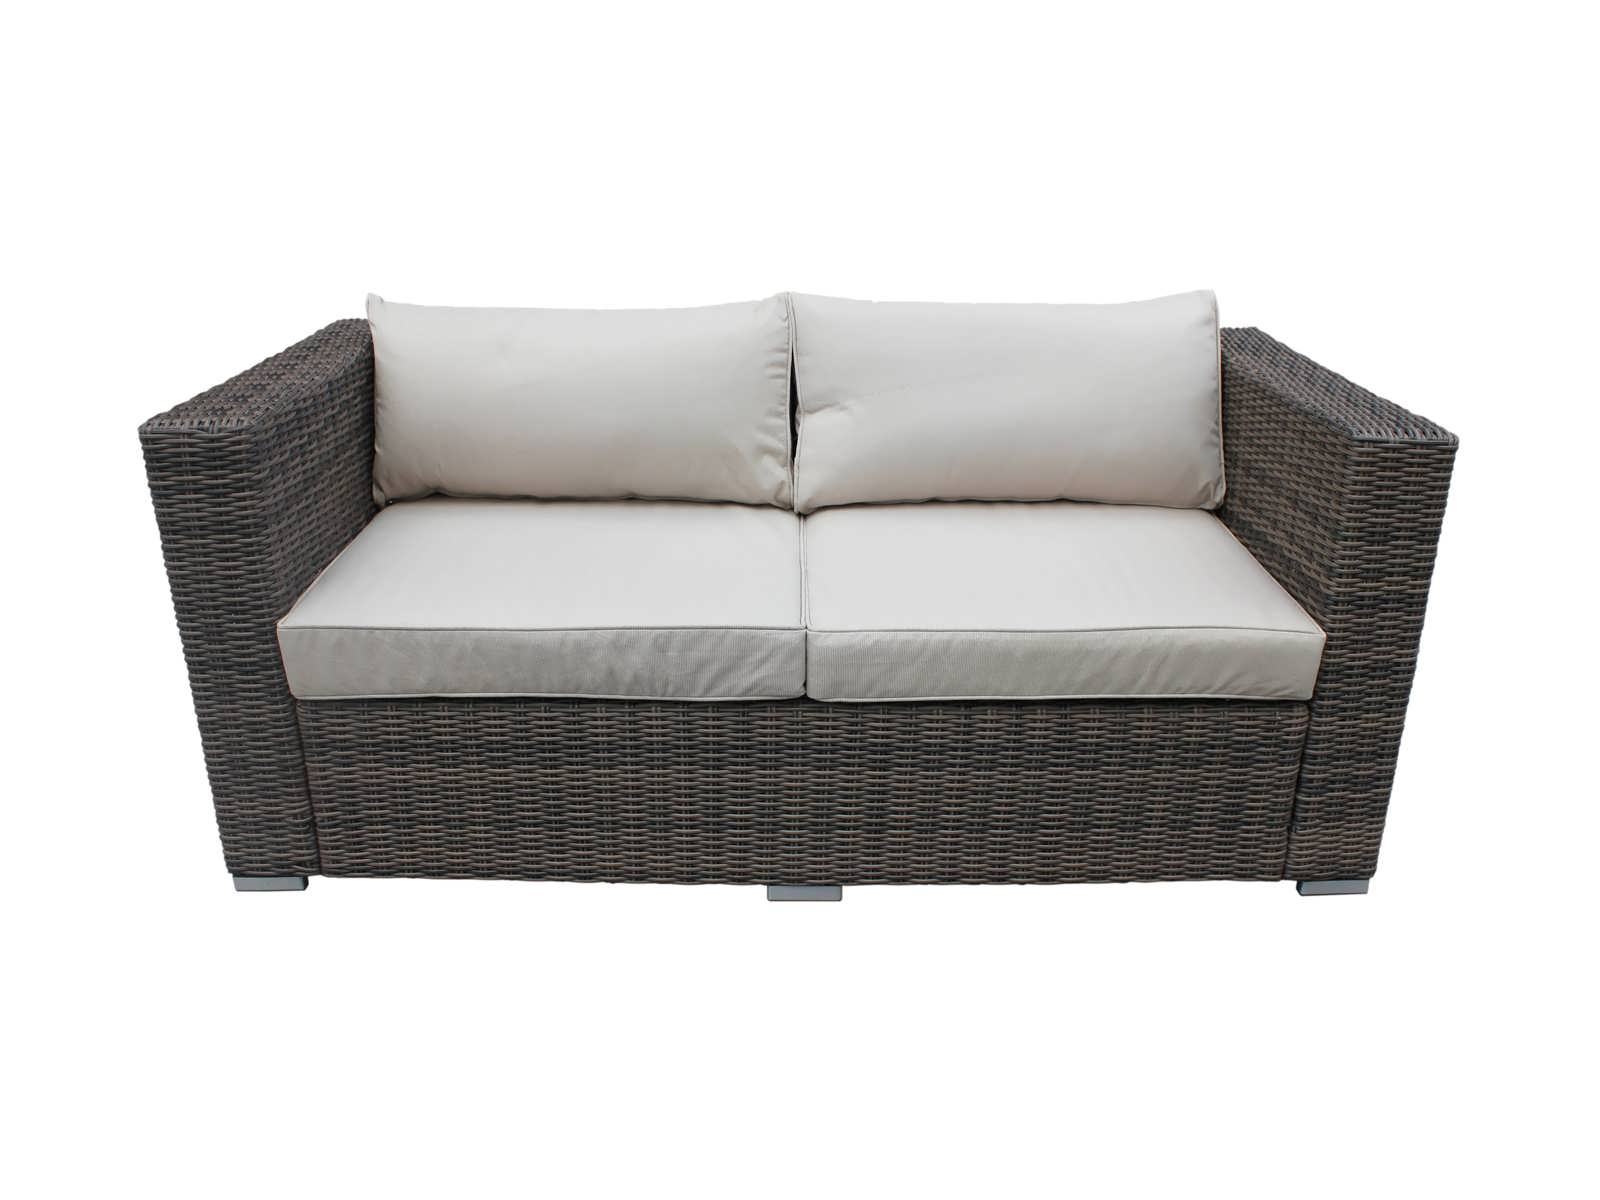 rattan outdoor sofa denim fabric sectional sofas use sets to brighten your area